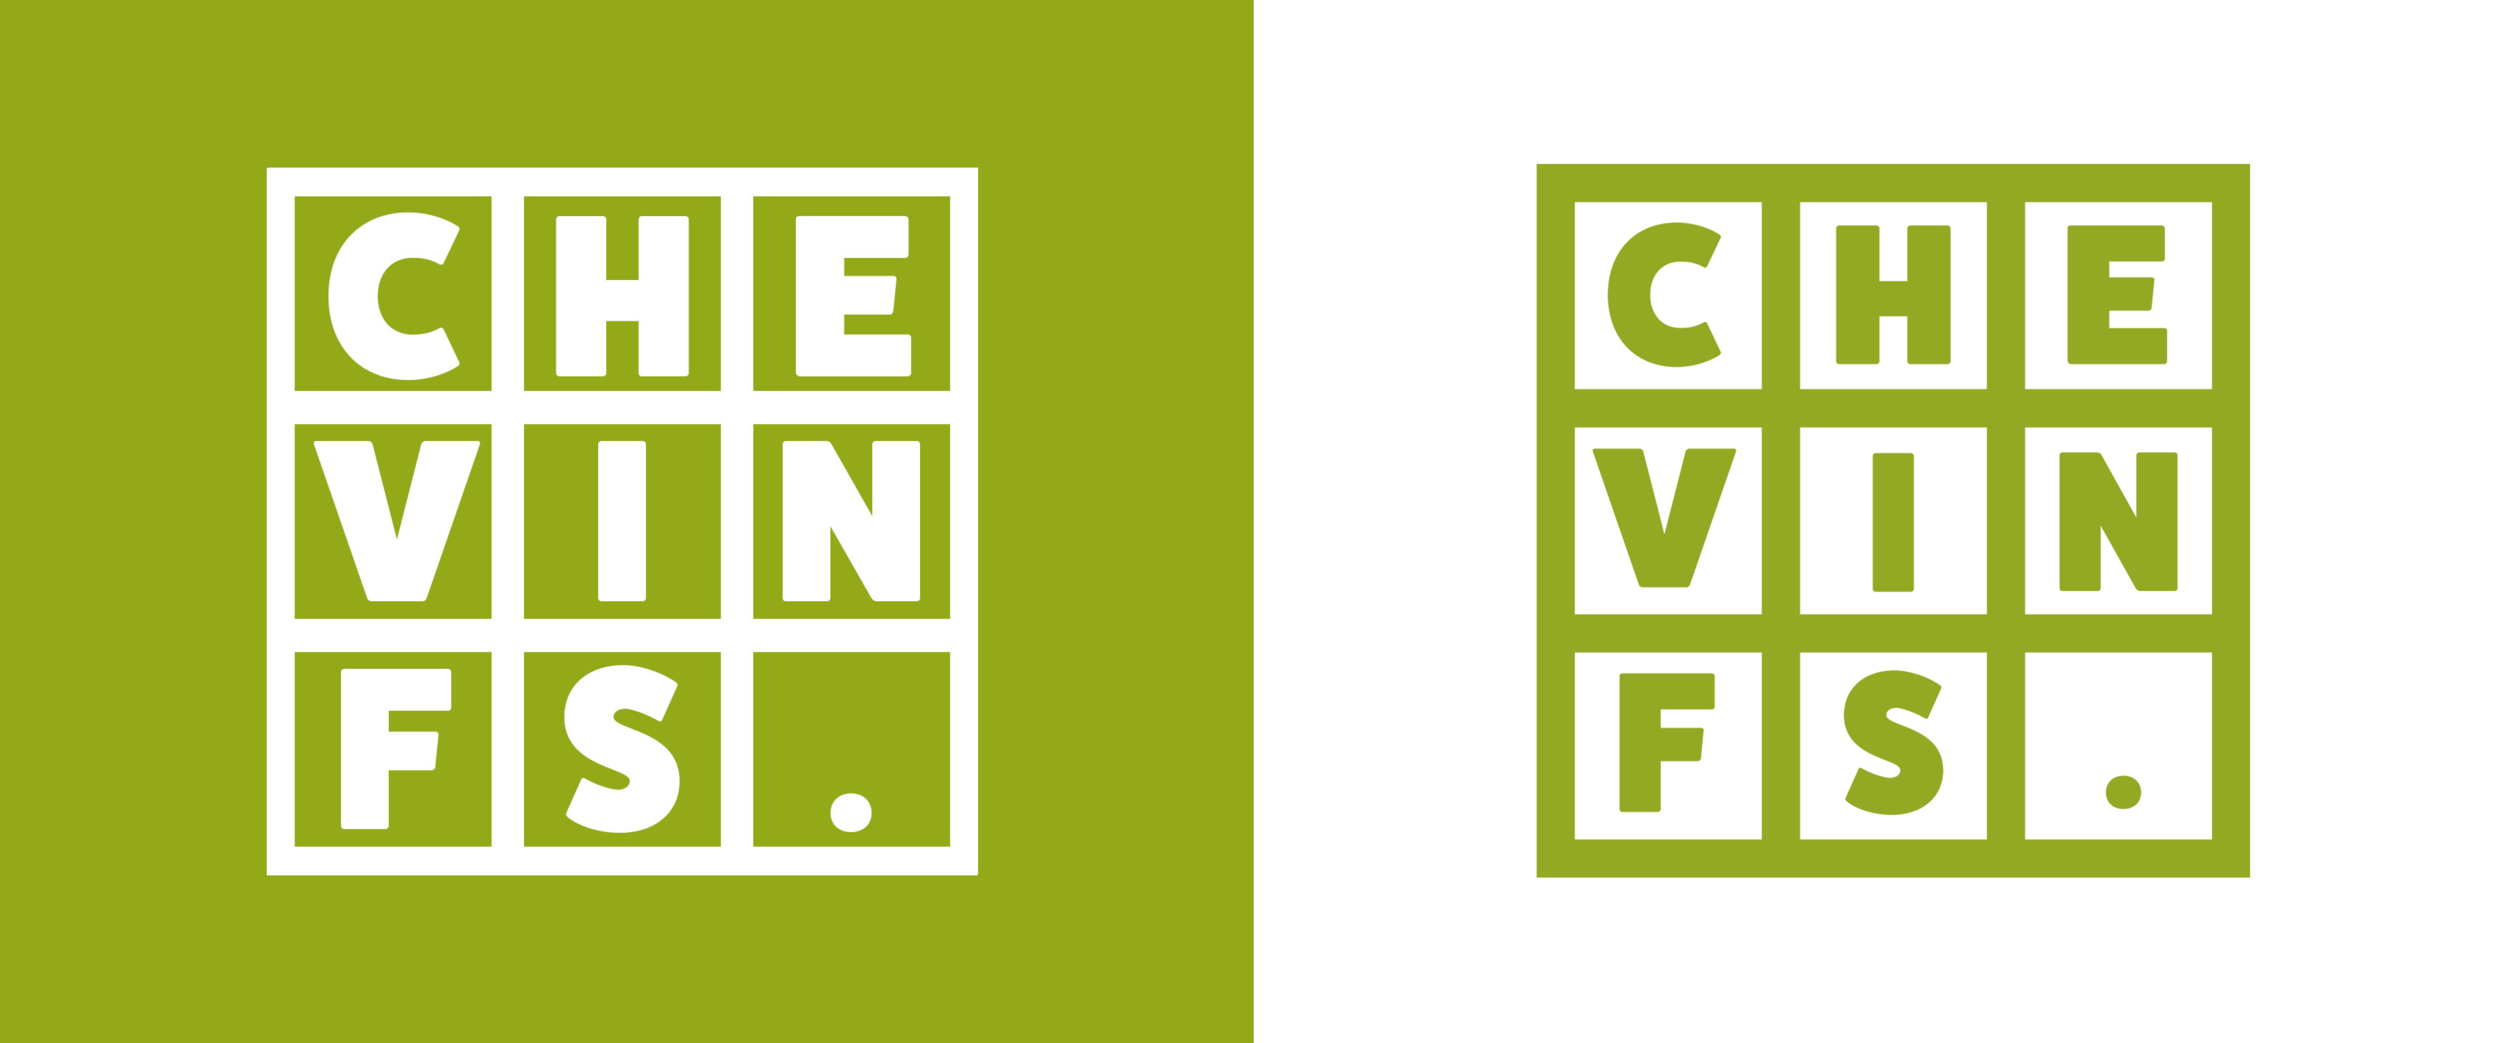 Chevin Forest School - Green Logos - THAT Branding Company - Creative Design and Branding Agency in Newcastle and Gateshead.png